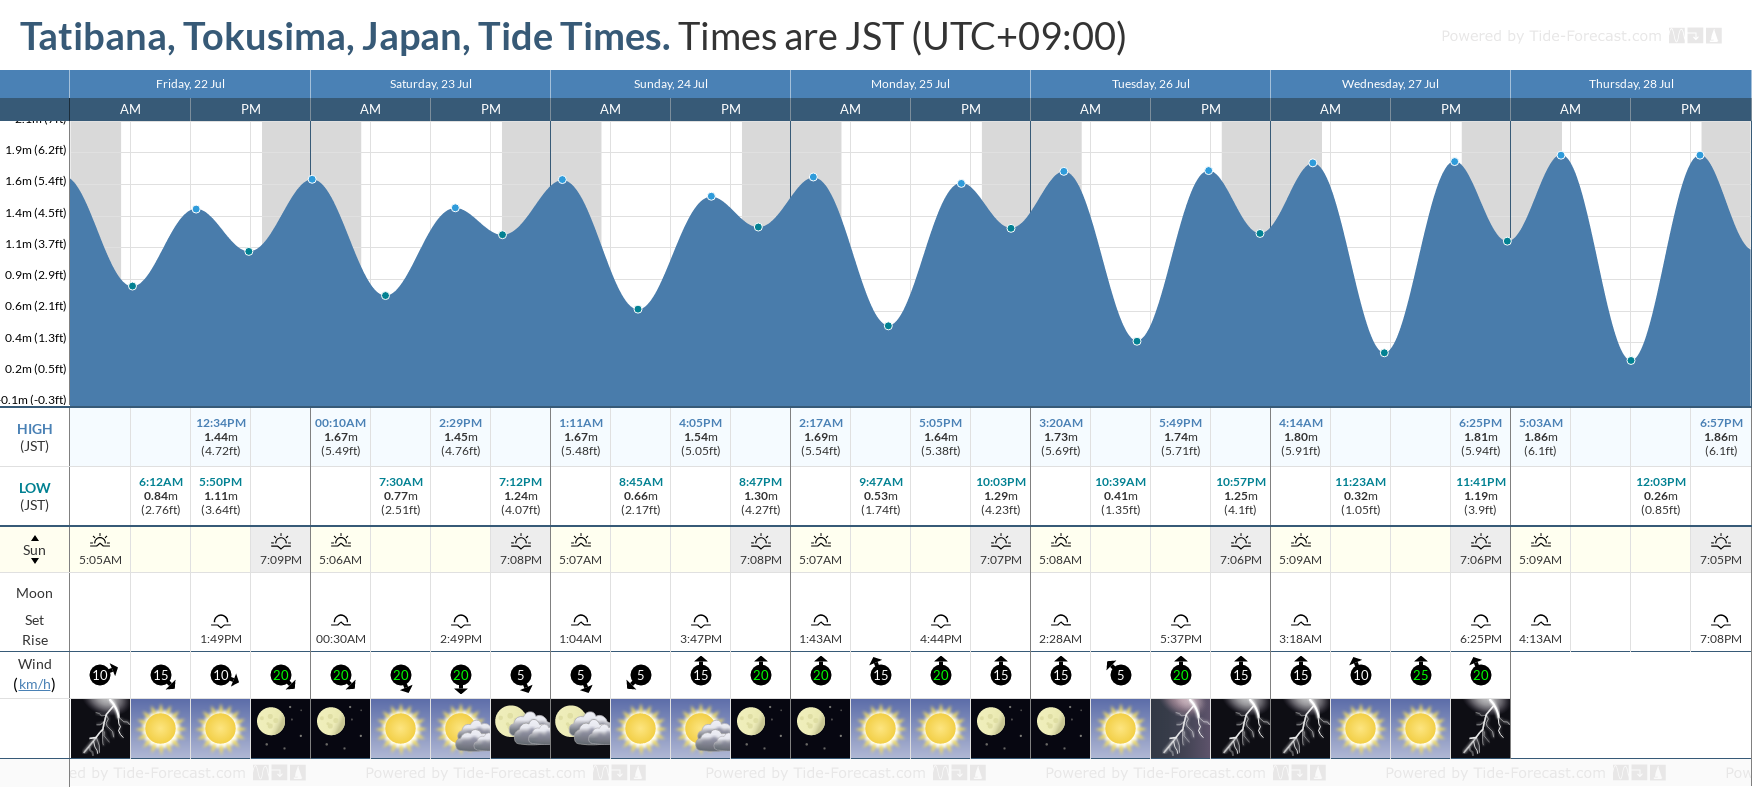 Tatibana, Tokusima, Japan Tide Chart including high and low tide tide times for the next 7 days